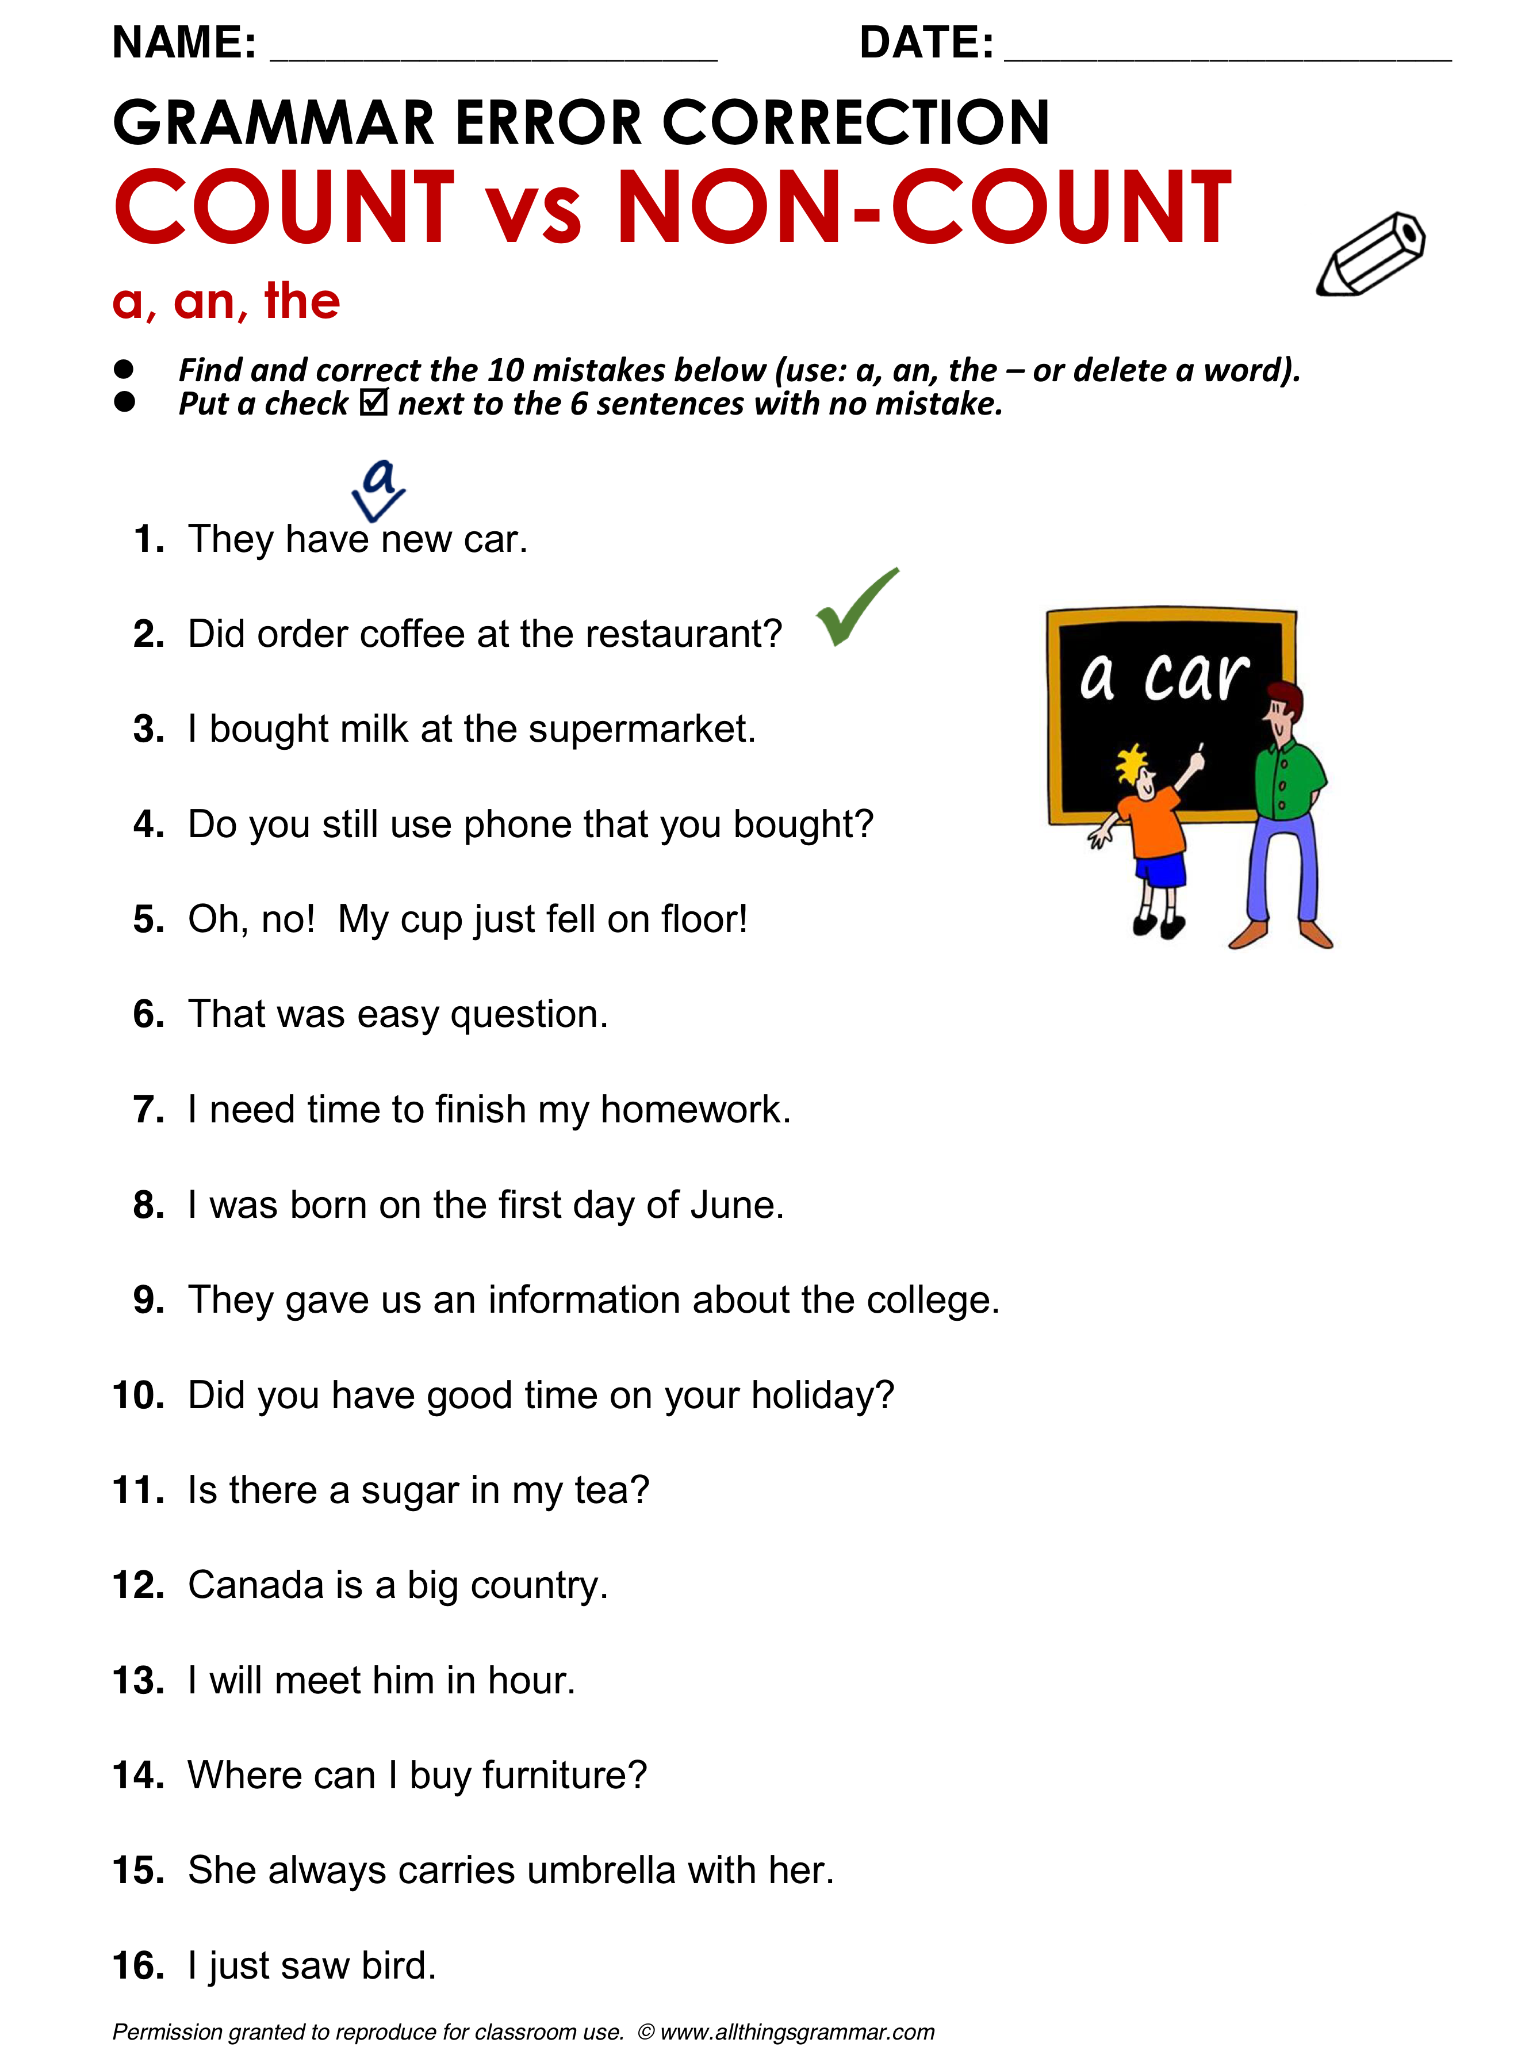 Worksheet On Count And Mass Nouns